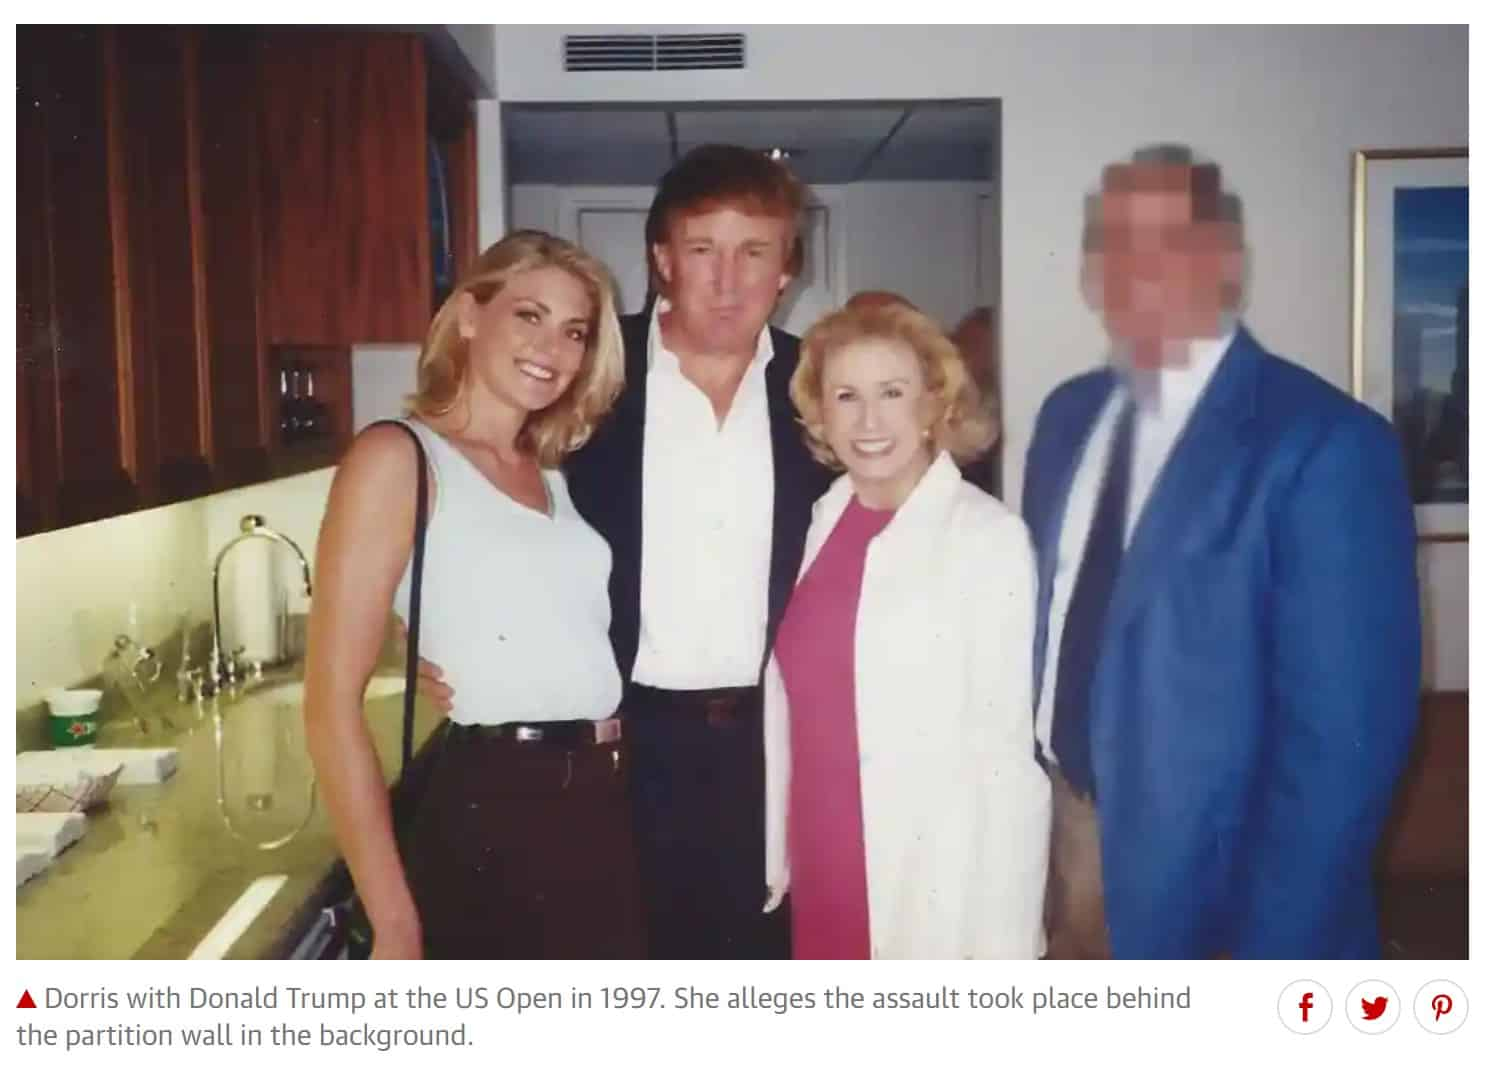 Breaking: Donald Trump accused of sexual assault by former model Amy Dorris